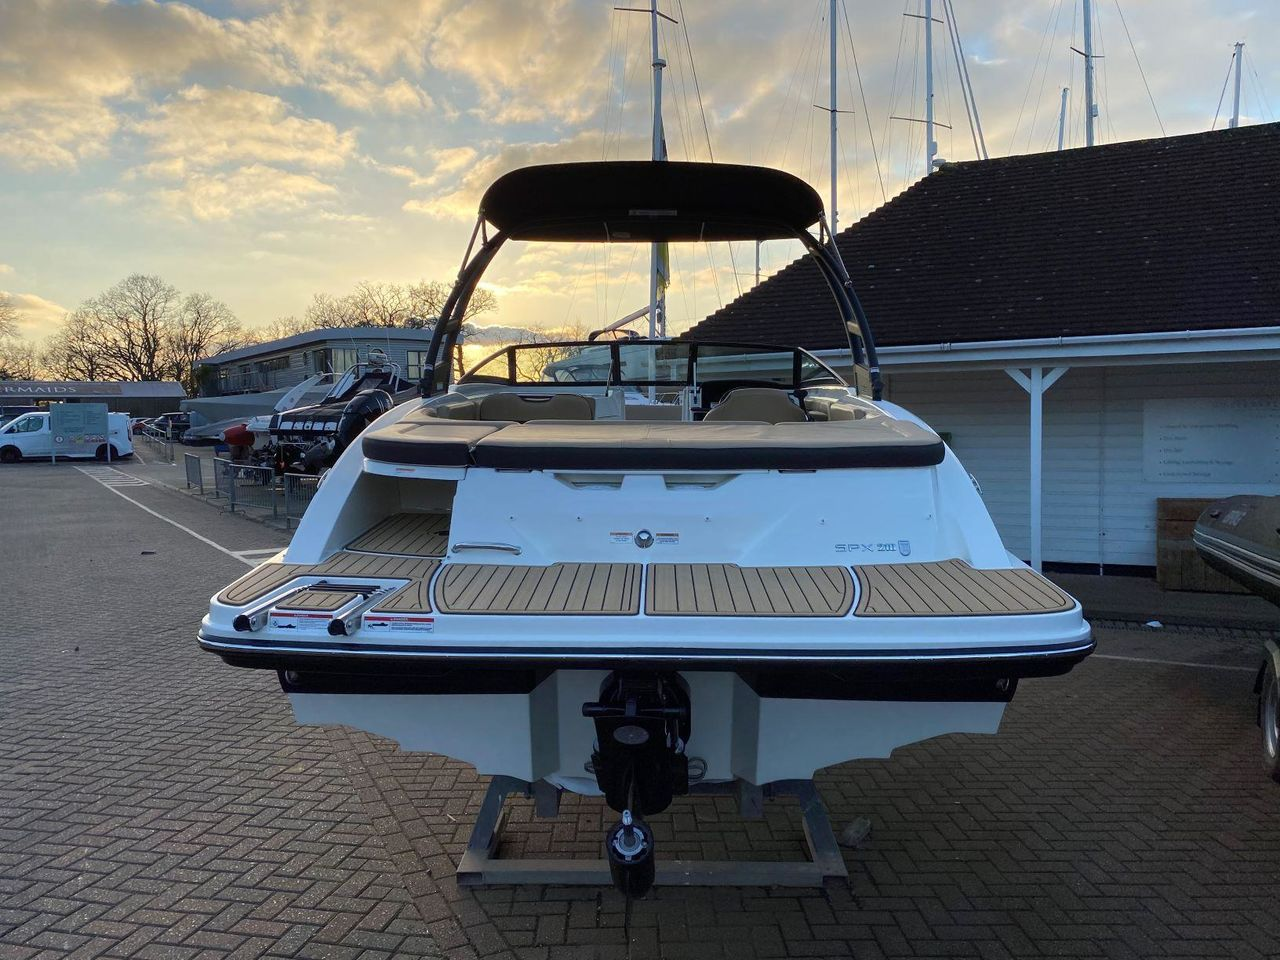 Sea Ray 210 SPXE Wakeedition - image 3